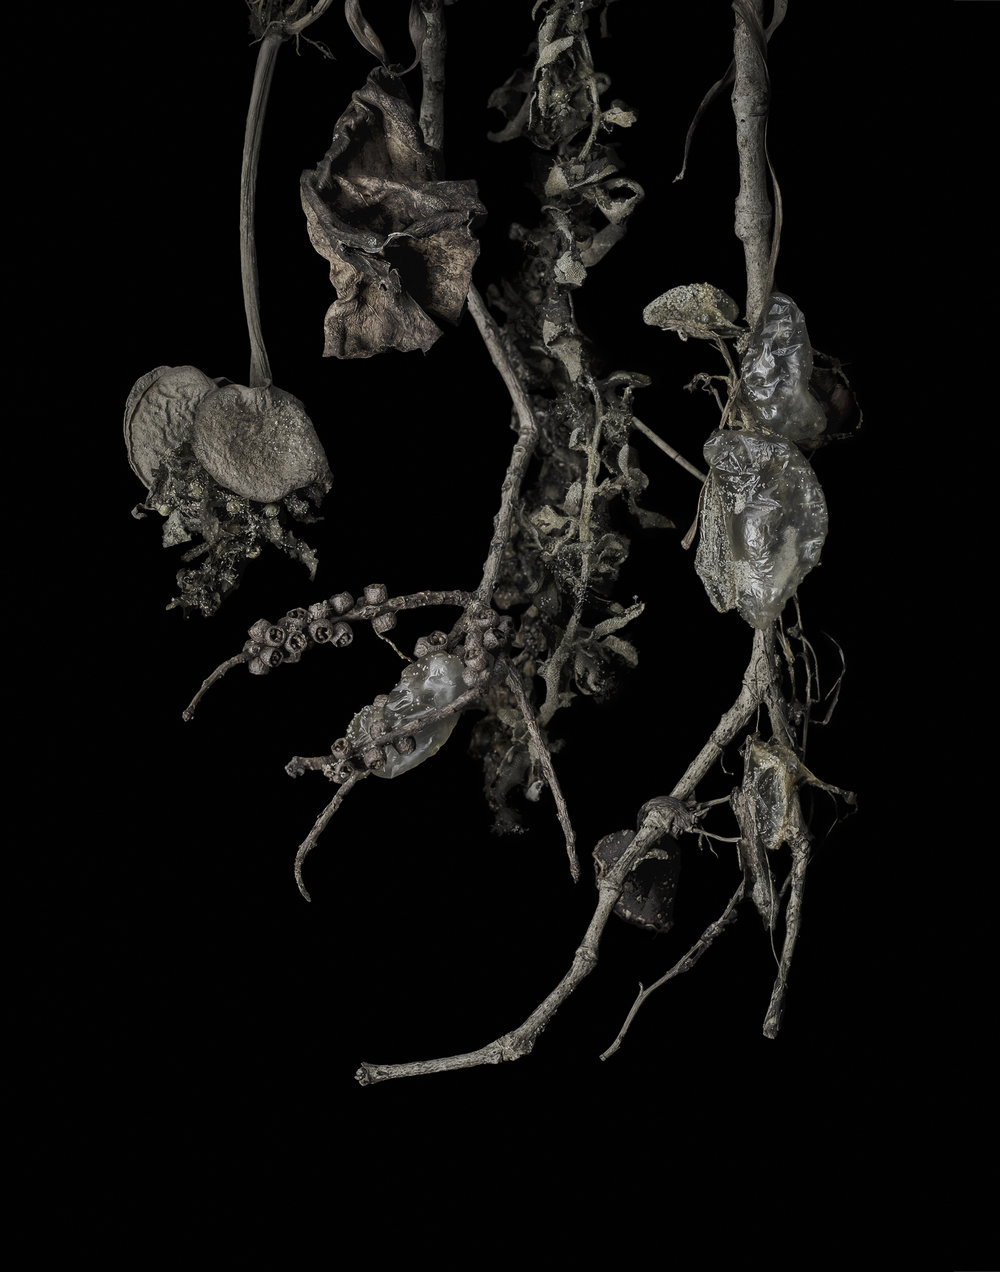 Clare Hodgins, Fig. 57, 2018, photograph on cotton rag paper, 26 x 20cm.jpg